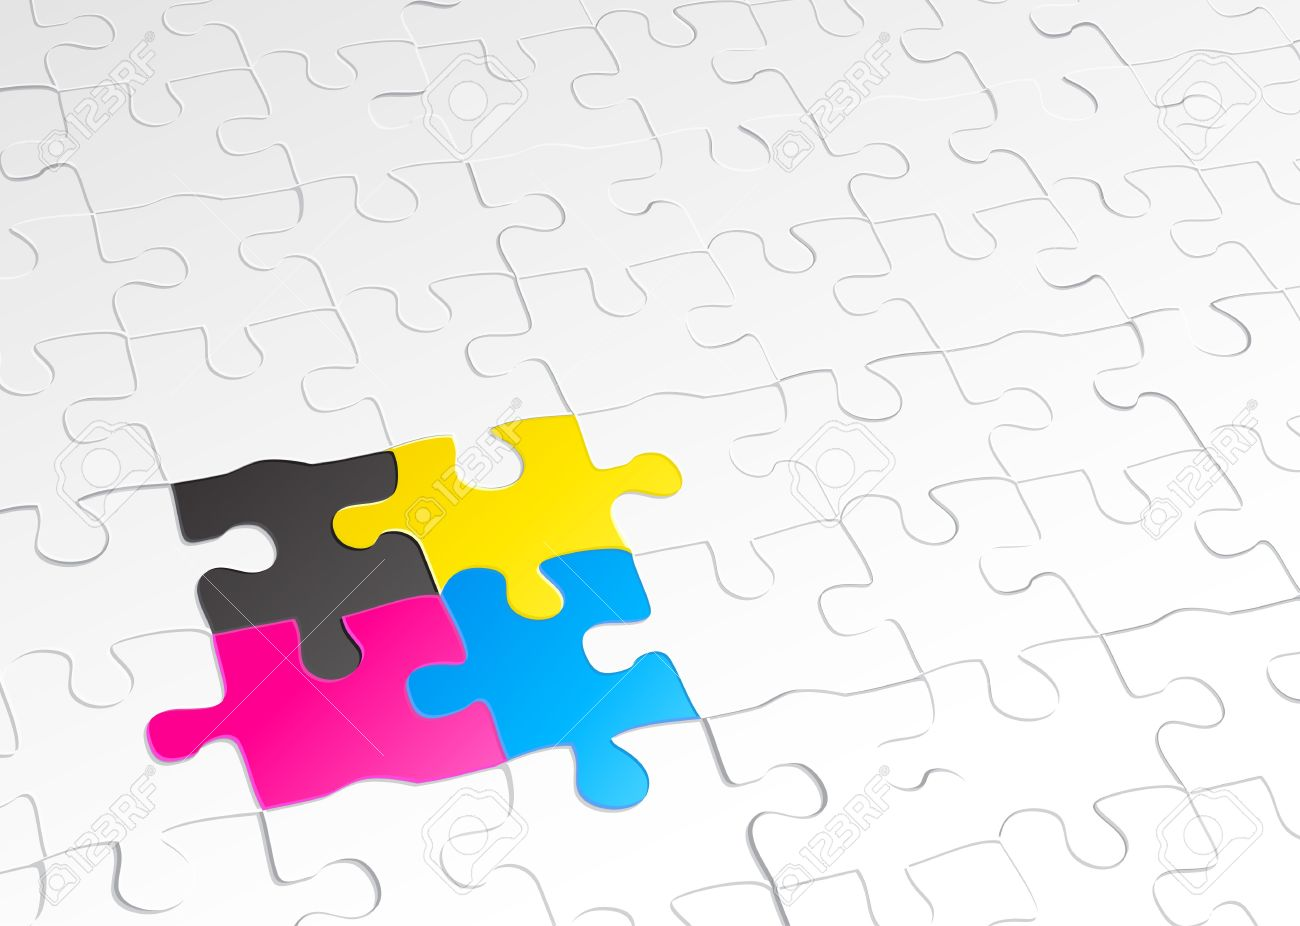 Abstract Background Made Of Jigsaw Puzzle Templates With 4 Pieces In Different Colors Stock Photo